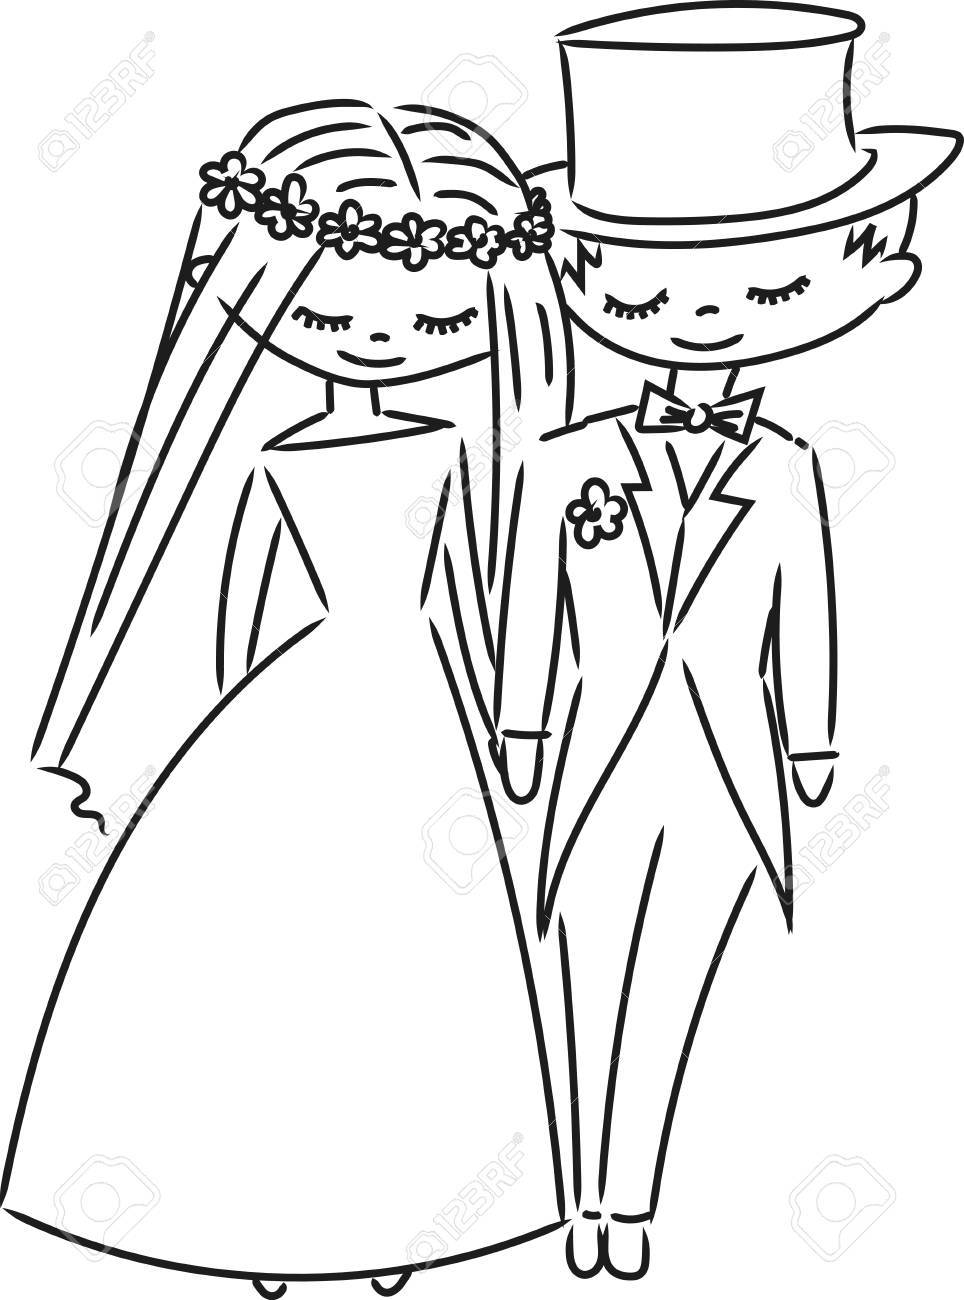 964x1300 Wedding Couple Sketch Royalty Free Cliparts, Vectors, And Stock